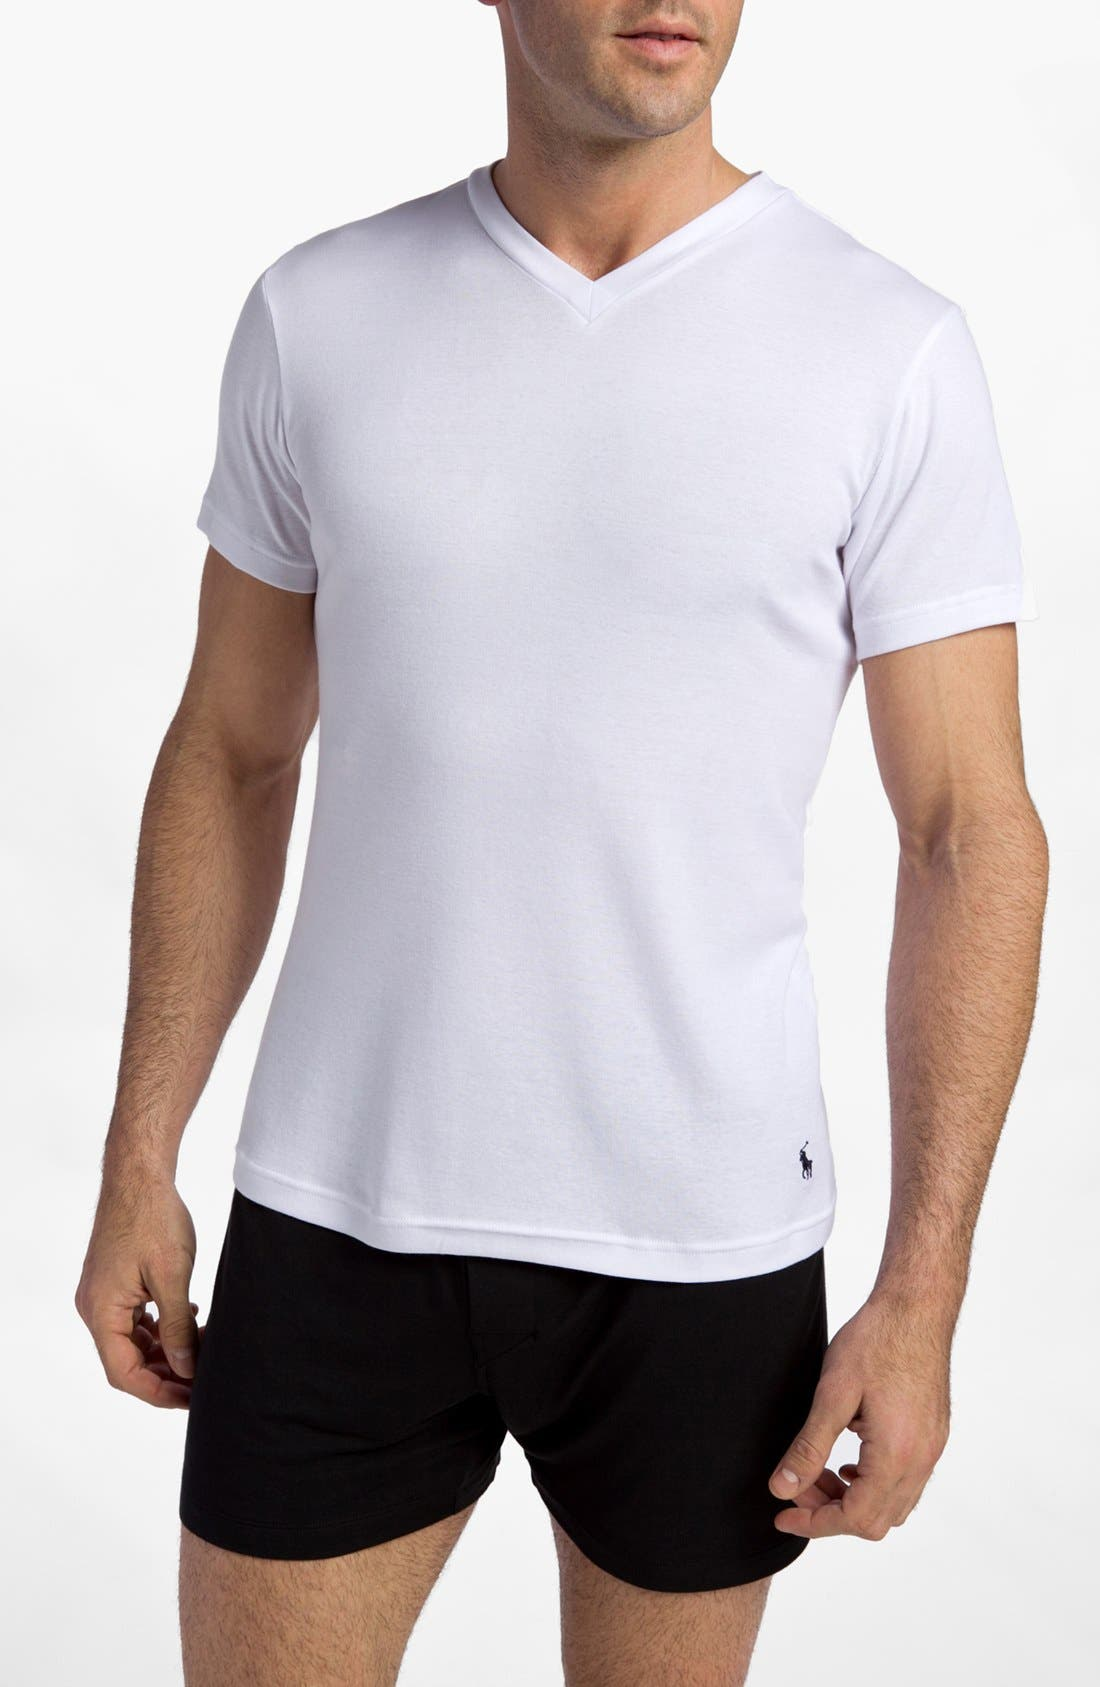 Main Image - Polo Ralph Lauren 2-Pack V-Neck T-Shirt (Tall)